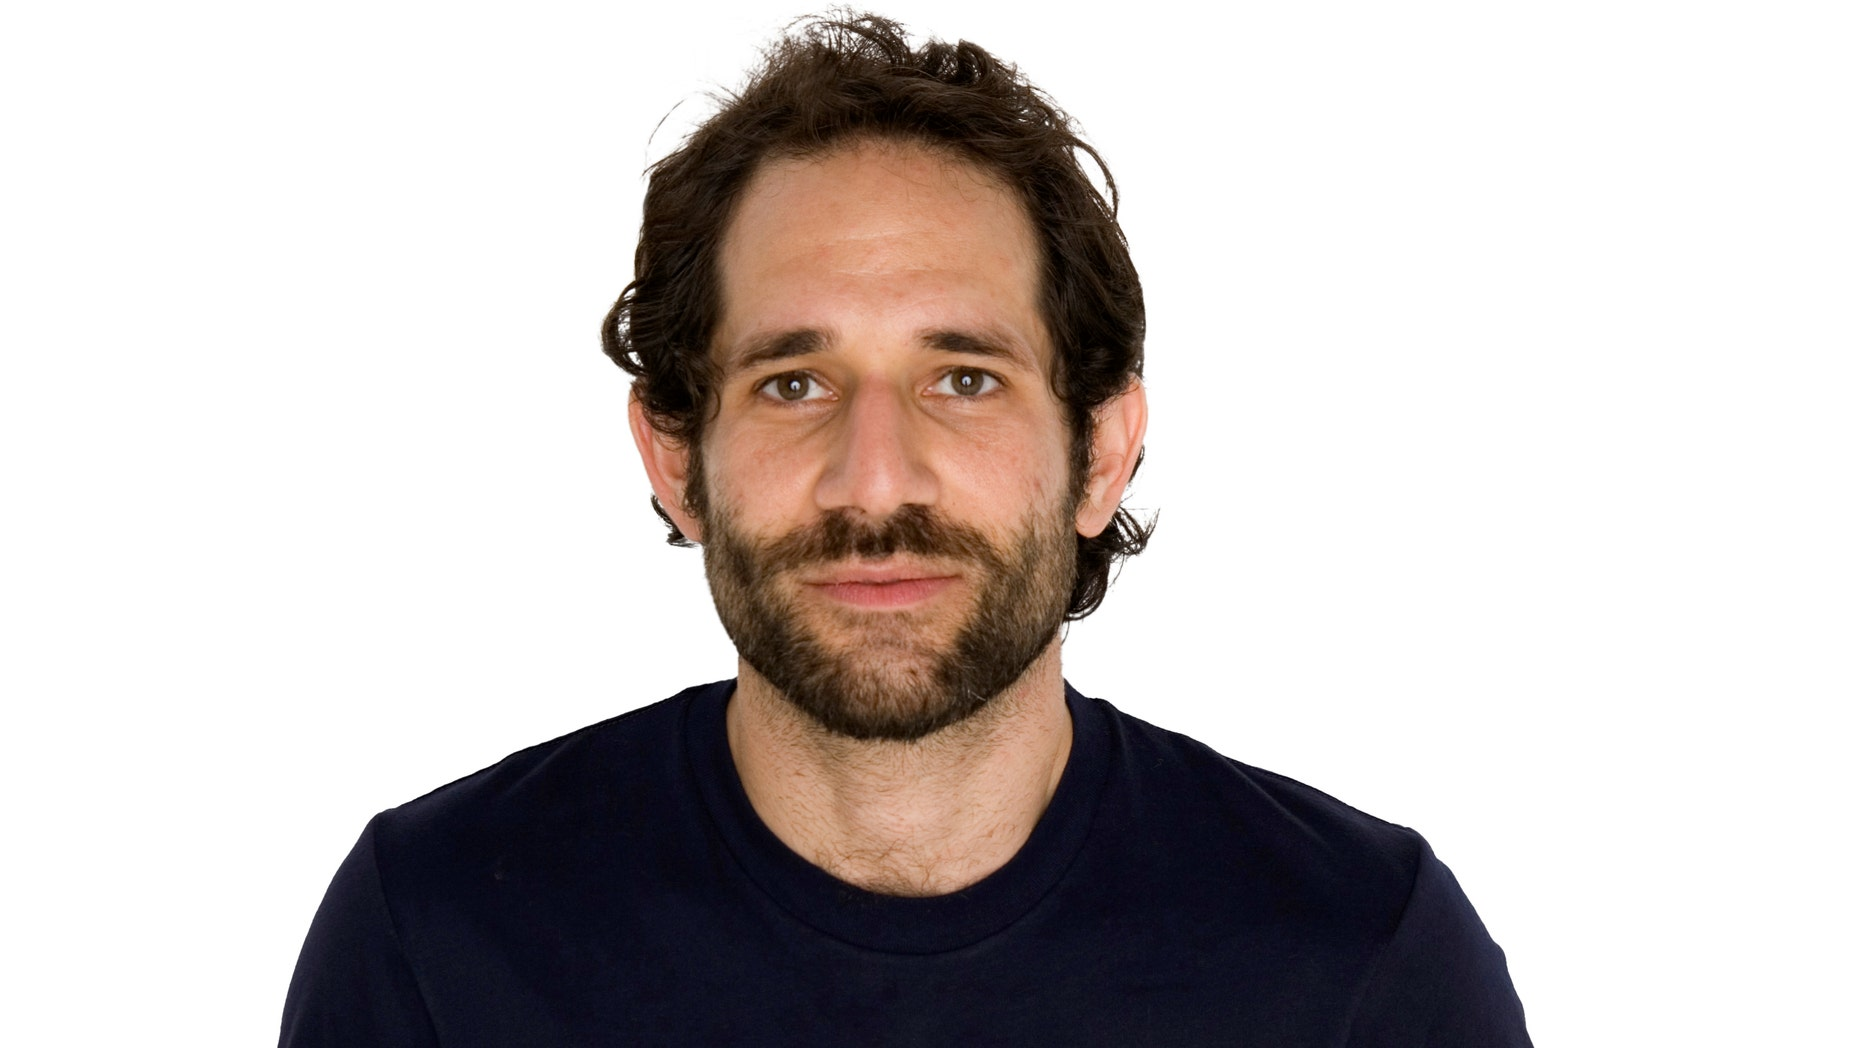 LOS ANGELES - UNDATED 2009:  In this handout image provided by American Apparel, CEO of American Apparel Dov Charney poses for a photo on undated in Los Angeles, California. (Photo by American Apparel via Getty Images)